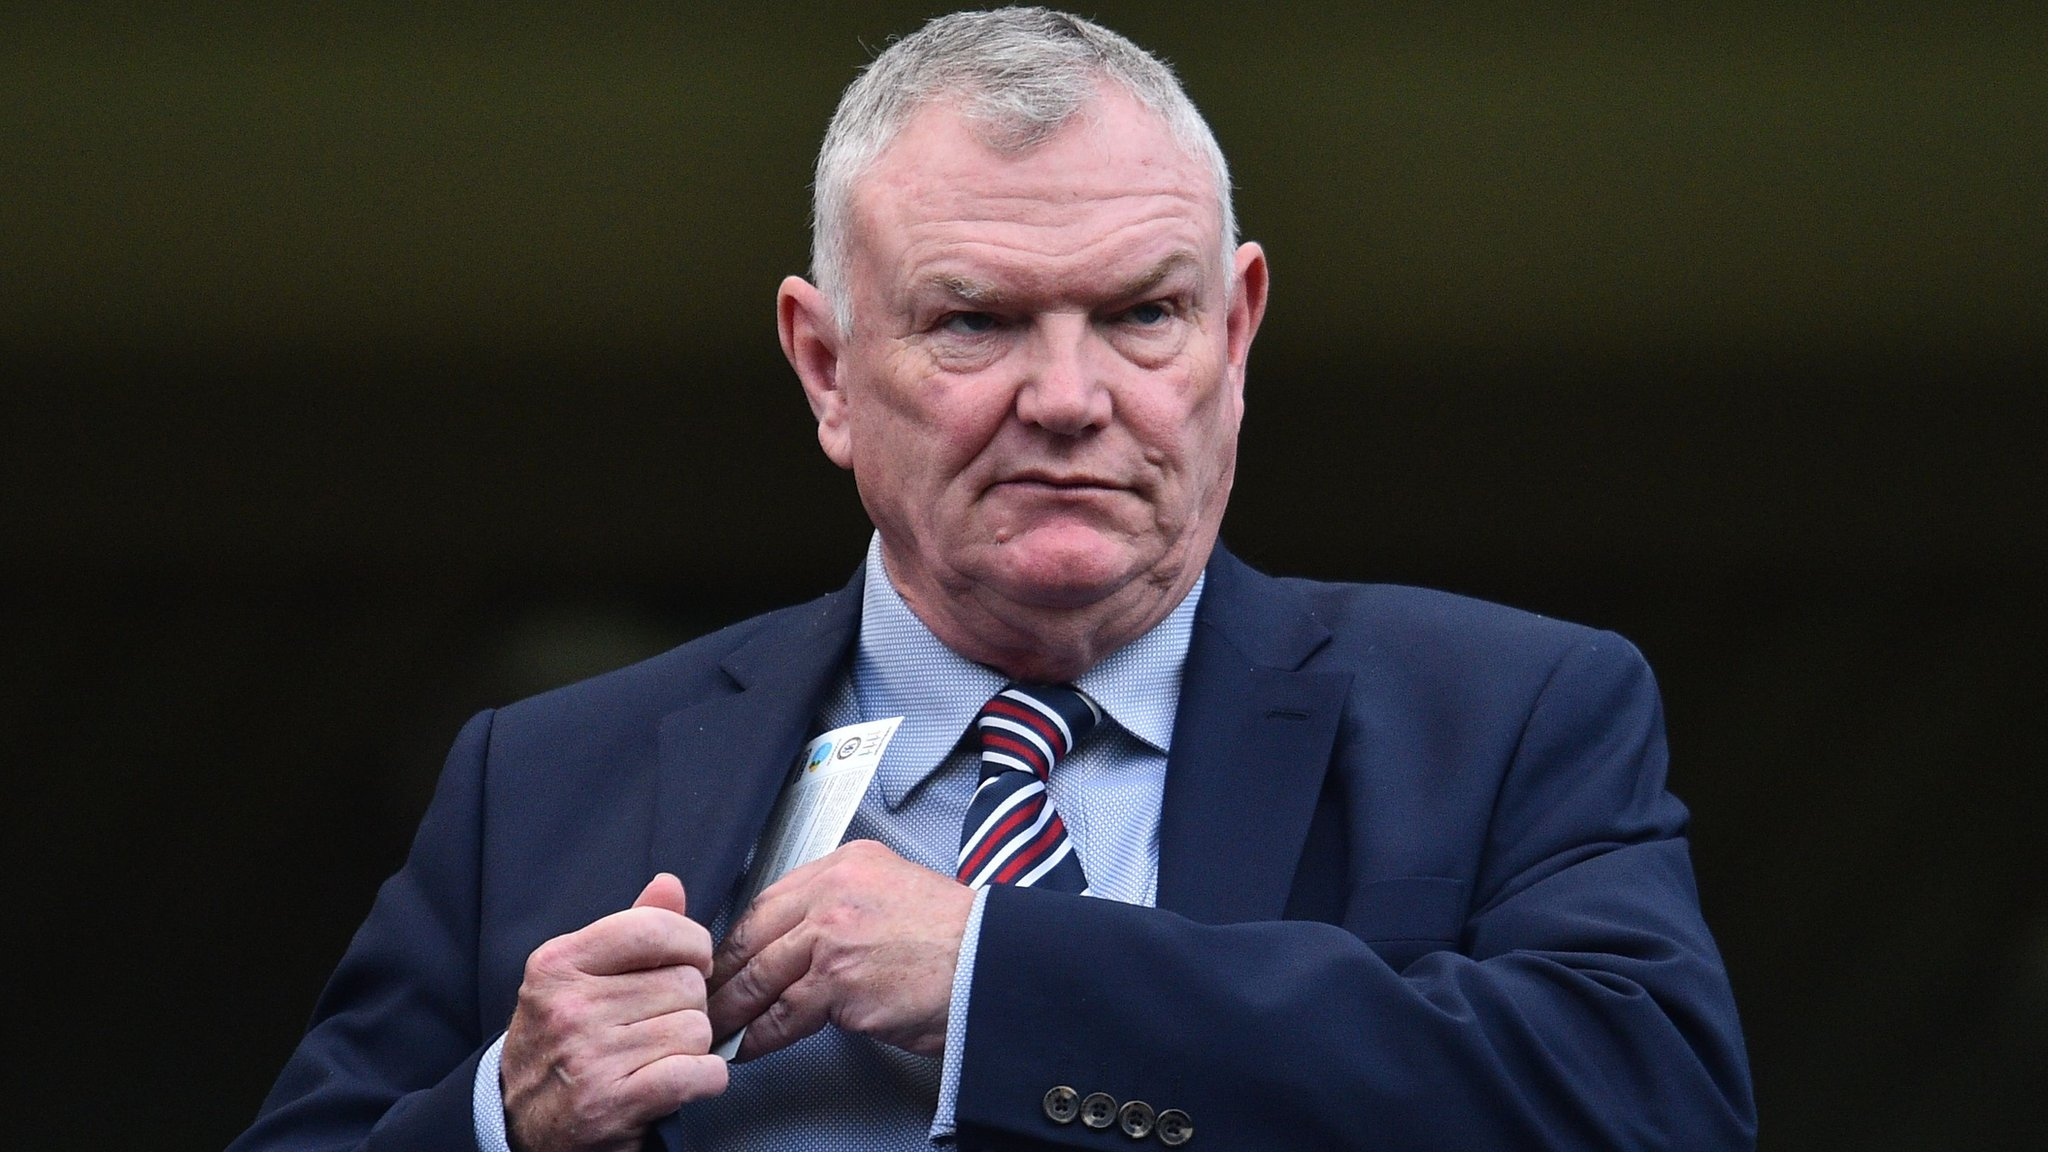 English football wouldn't lose soul over Wembley sale - FA chairman Clarke